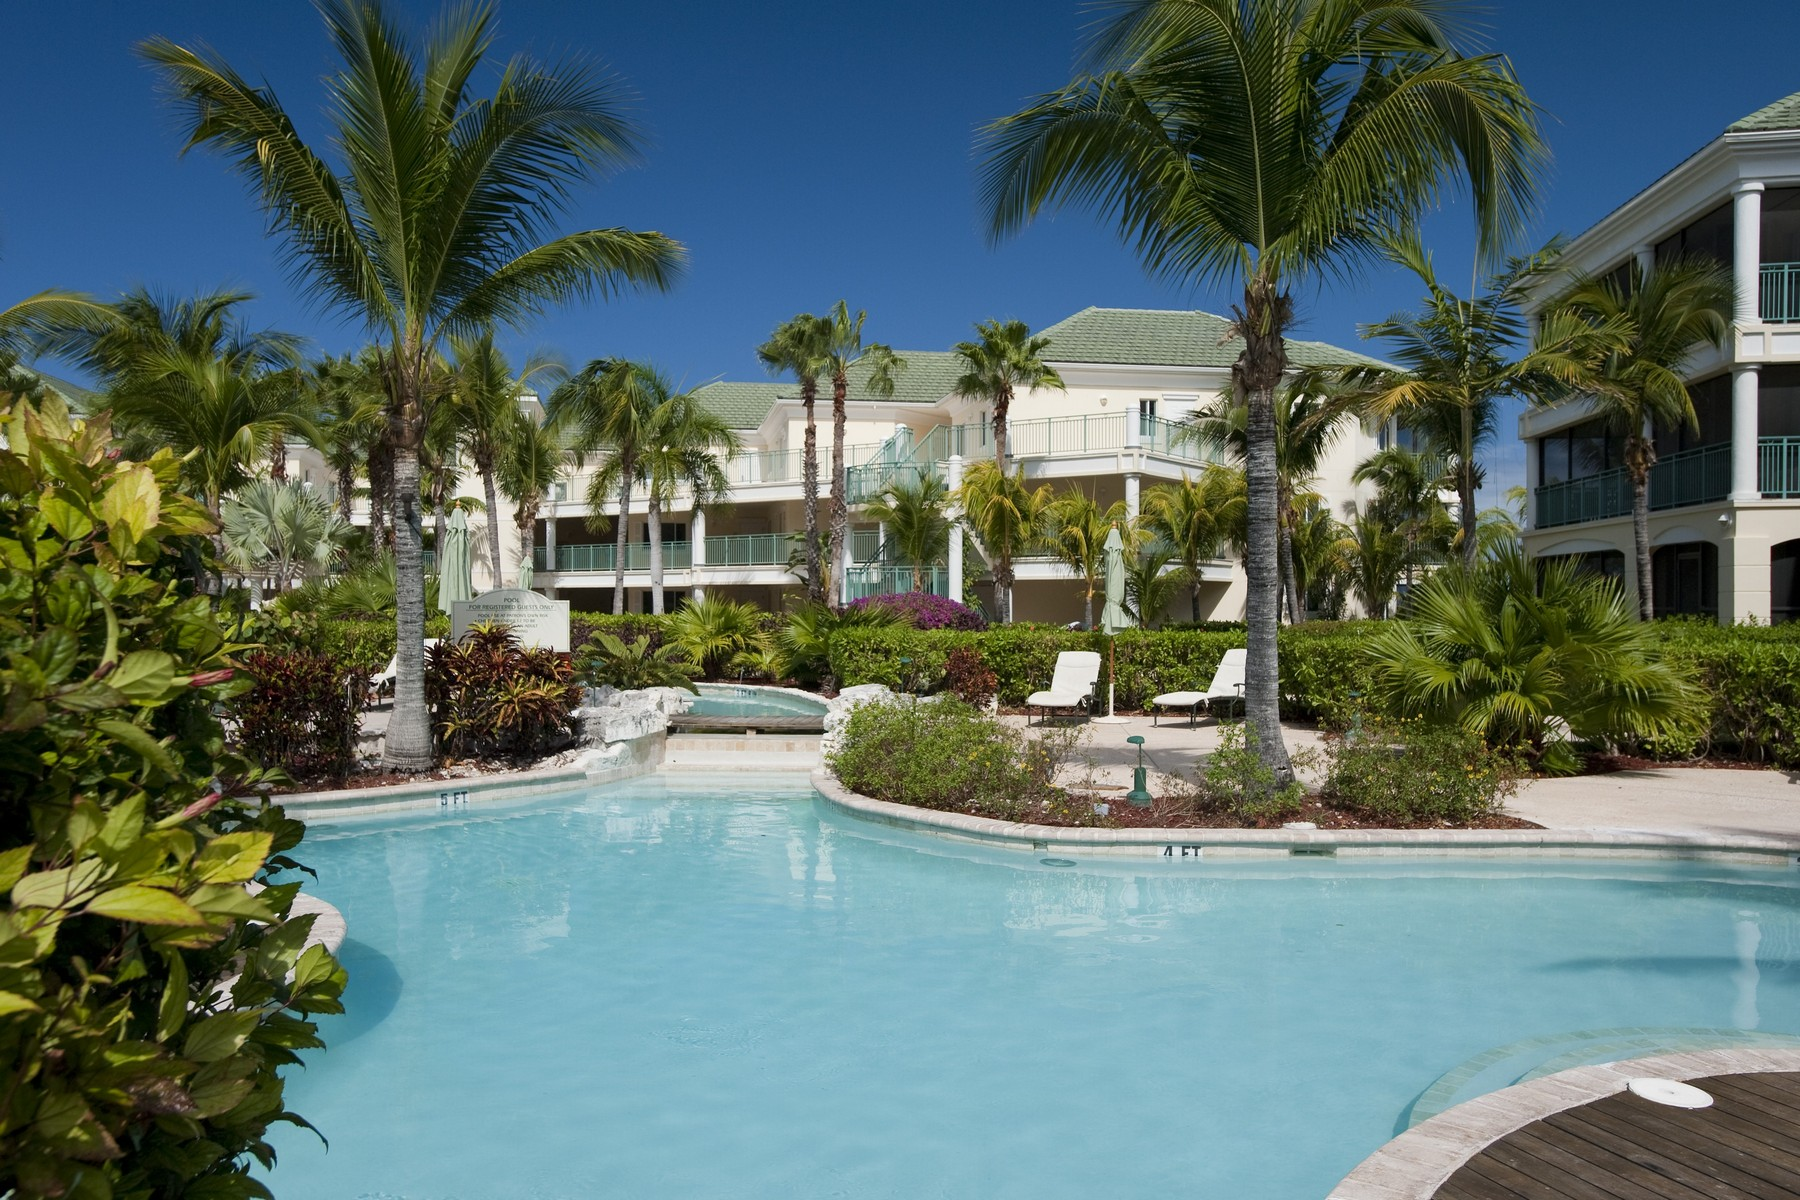 Condominium for Sale at The Sands Penthouse 3309/10 Beachfront Grace Bay, Providenciales TC Turks And Caicos Islands